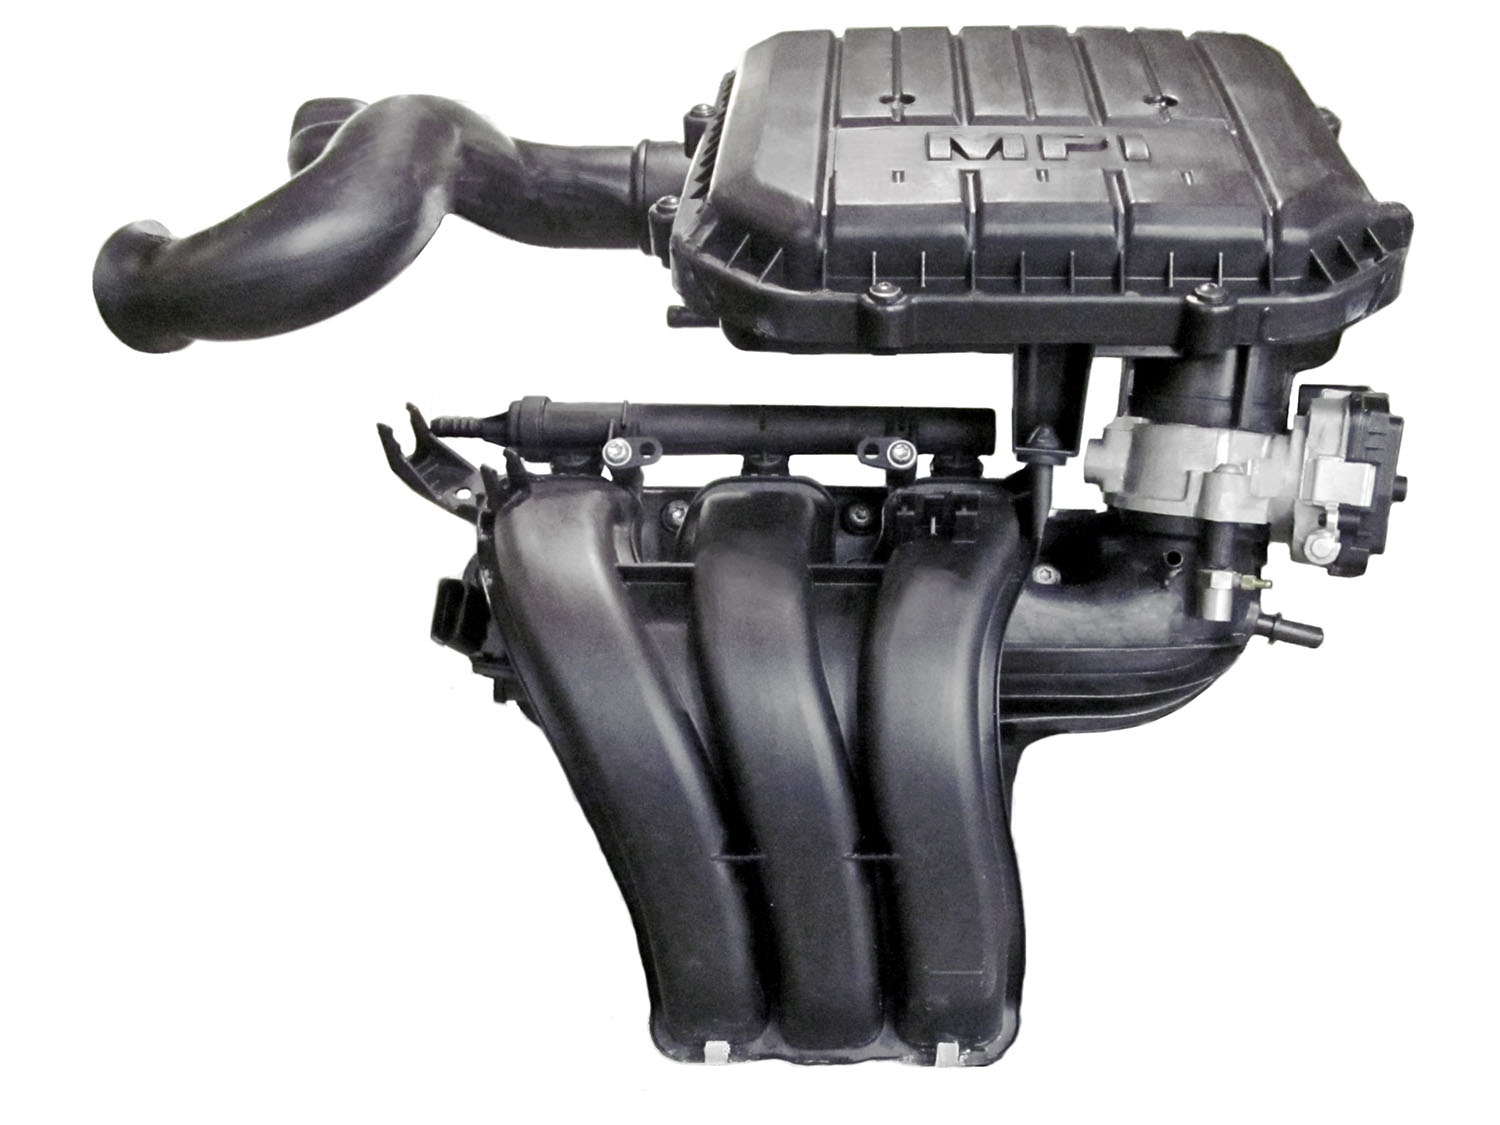 Engine Intake Manifold : Air intake manifold systems röchling global